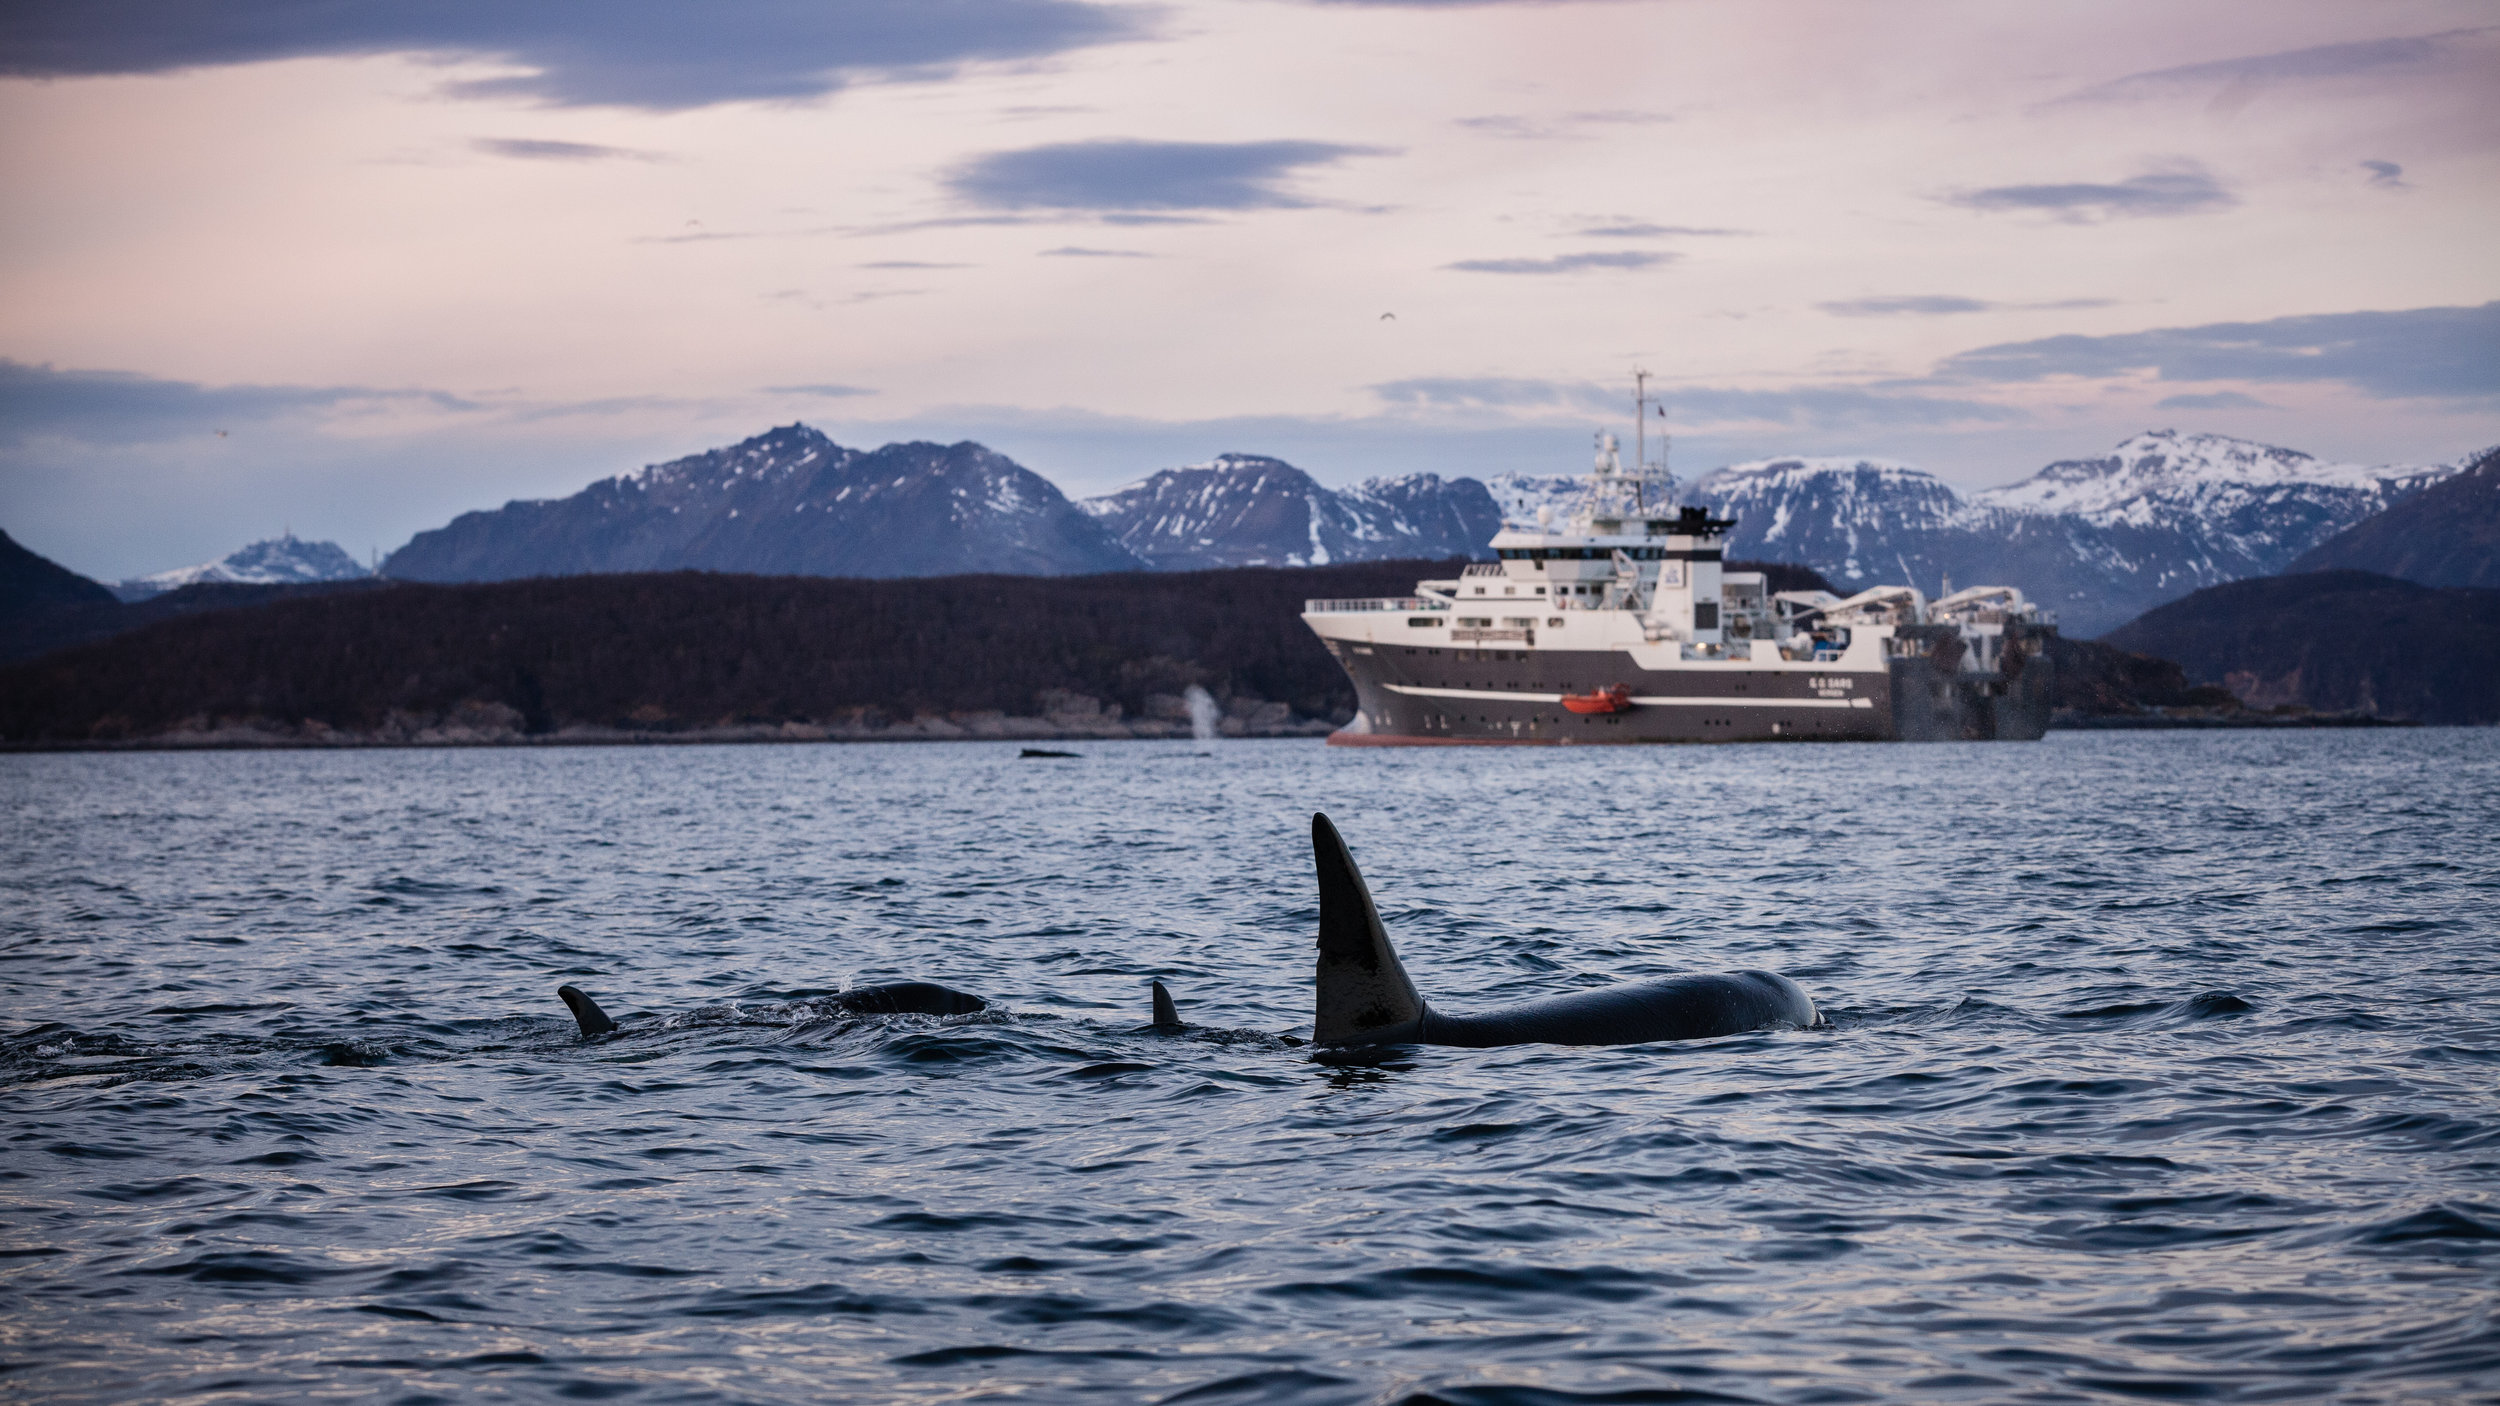 Orcas with humpbacks in the background